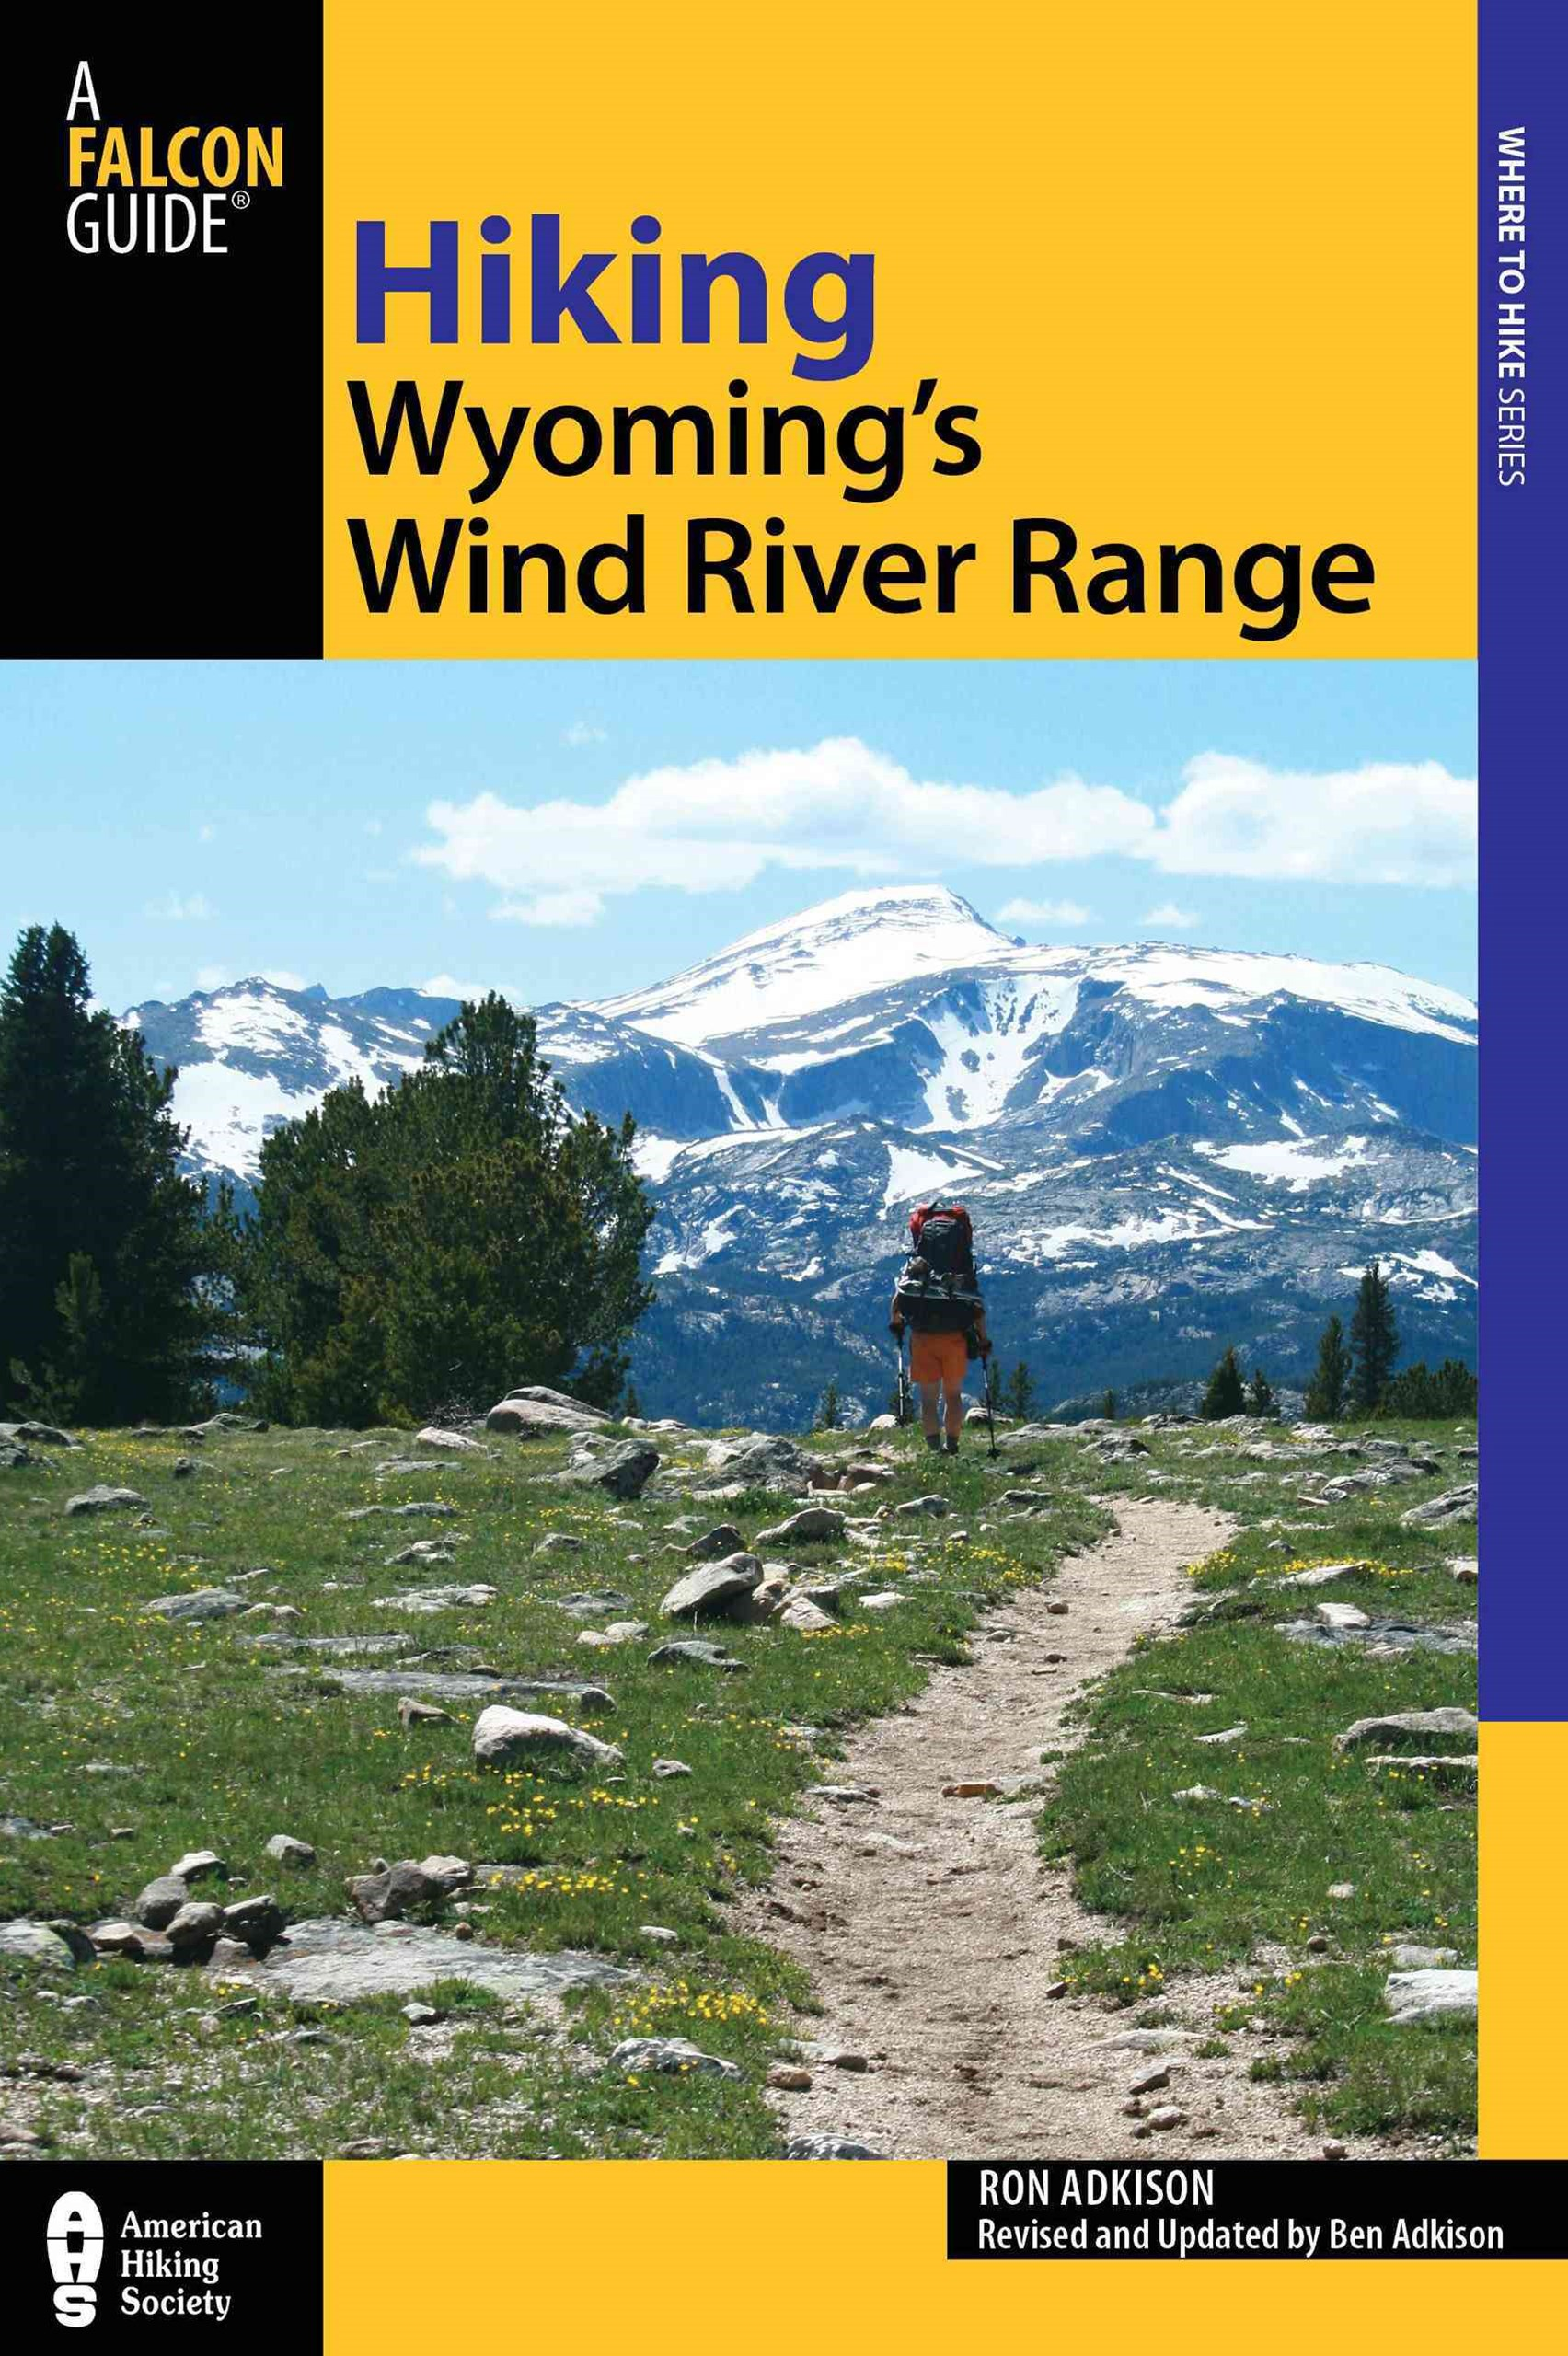 Hiking Wyoming's Wind River Range